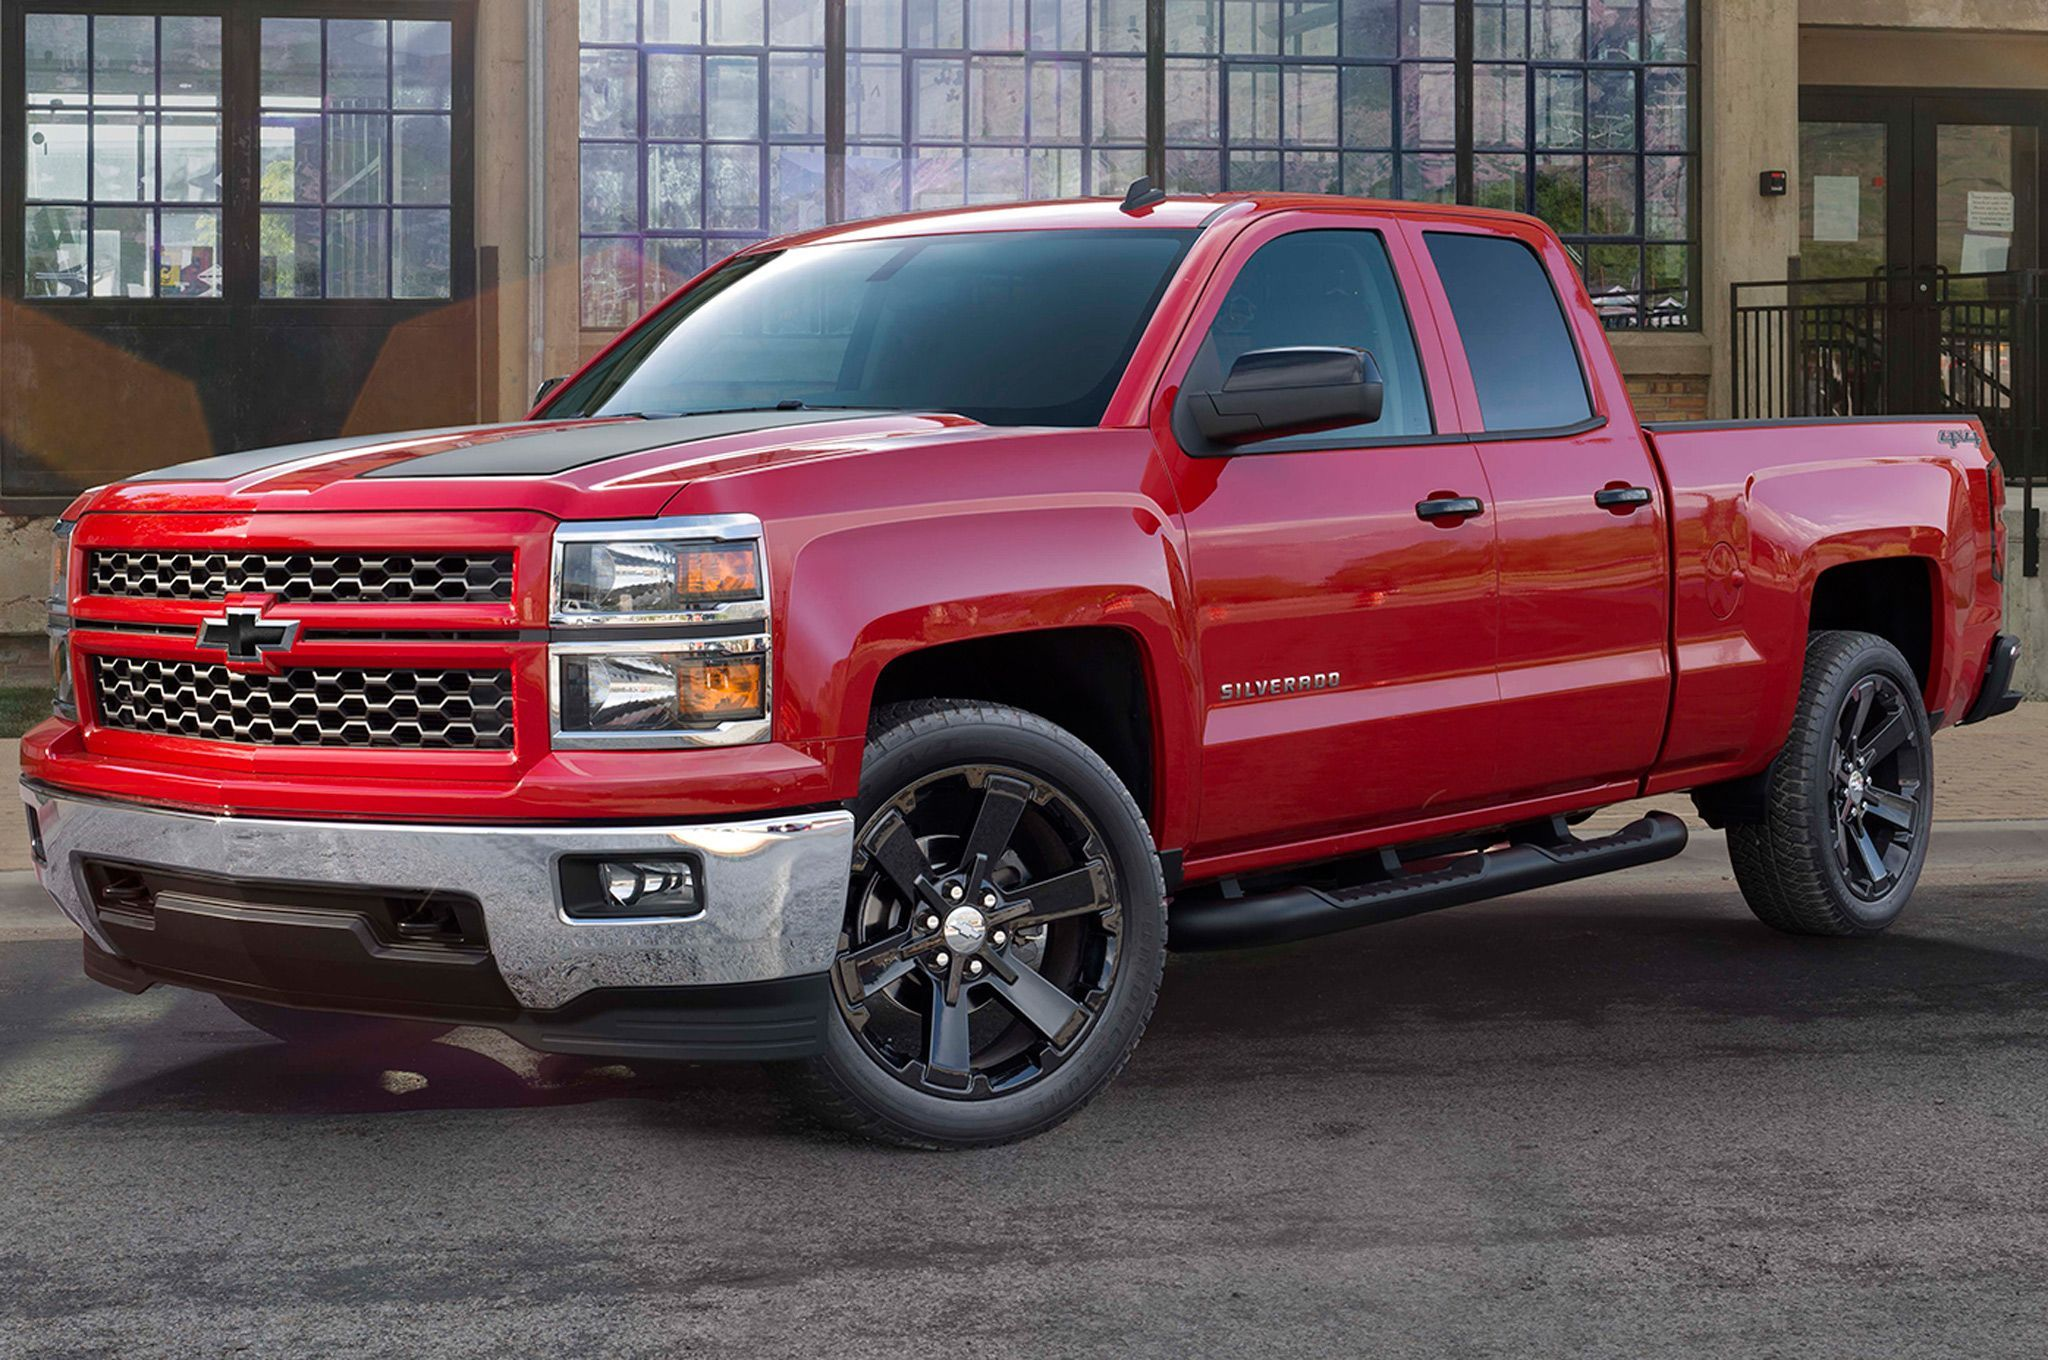 2017 chevrolet silverado release date review http futurecarrelease net 2017